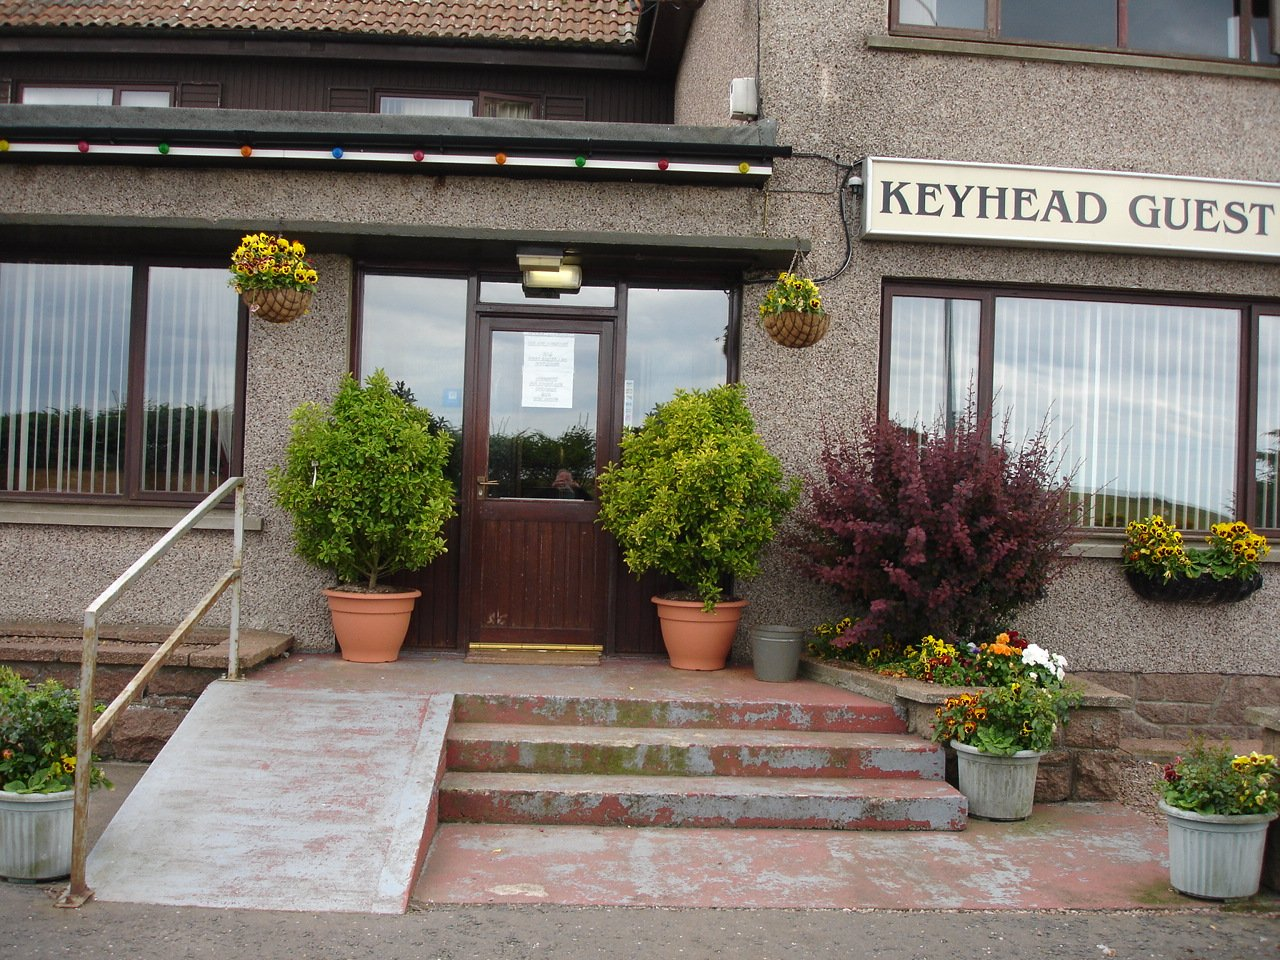 the entrance of the keyhead gues house